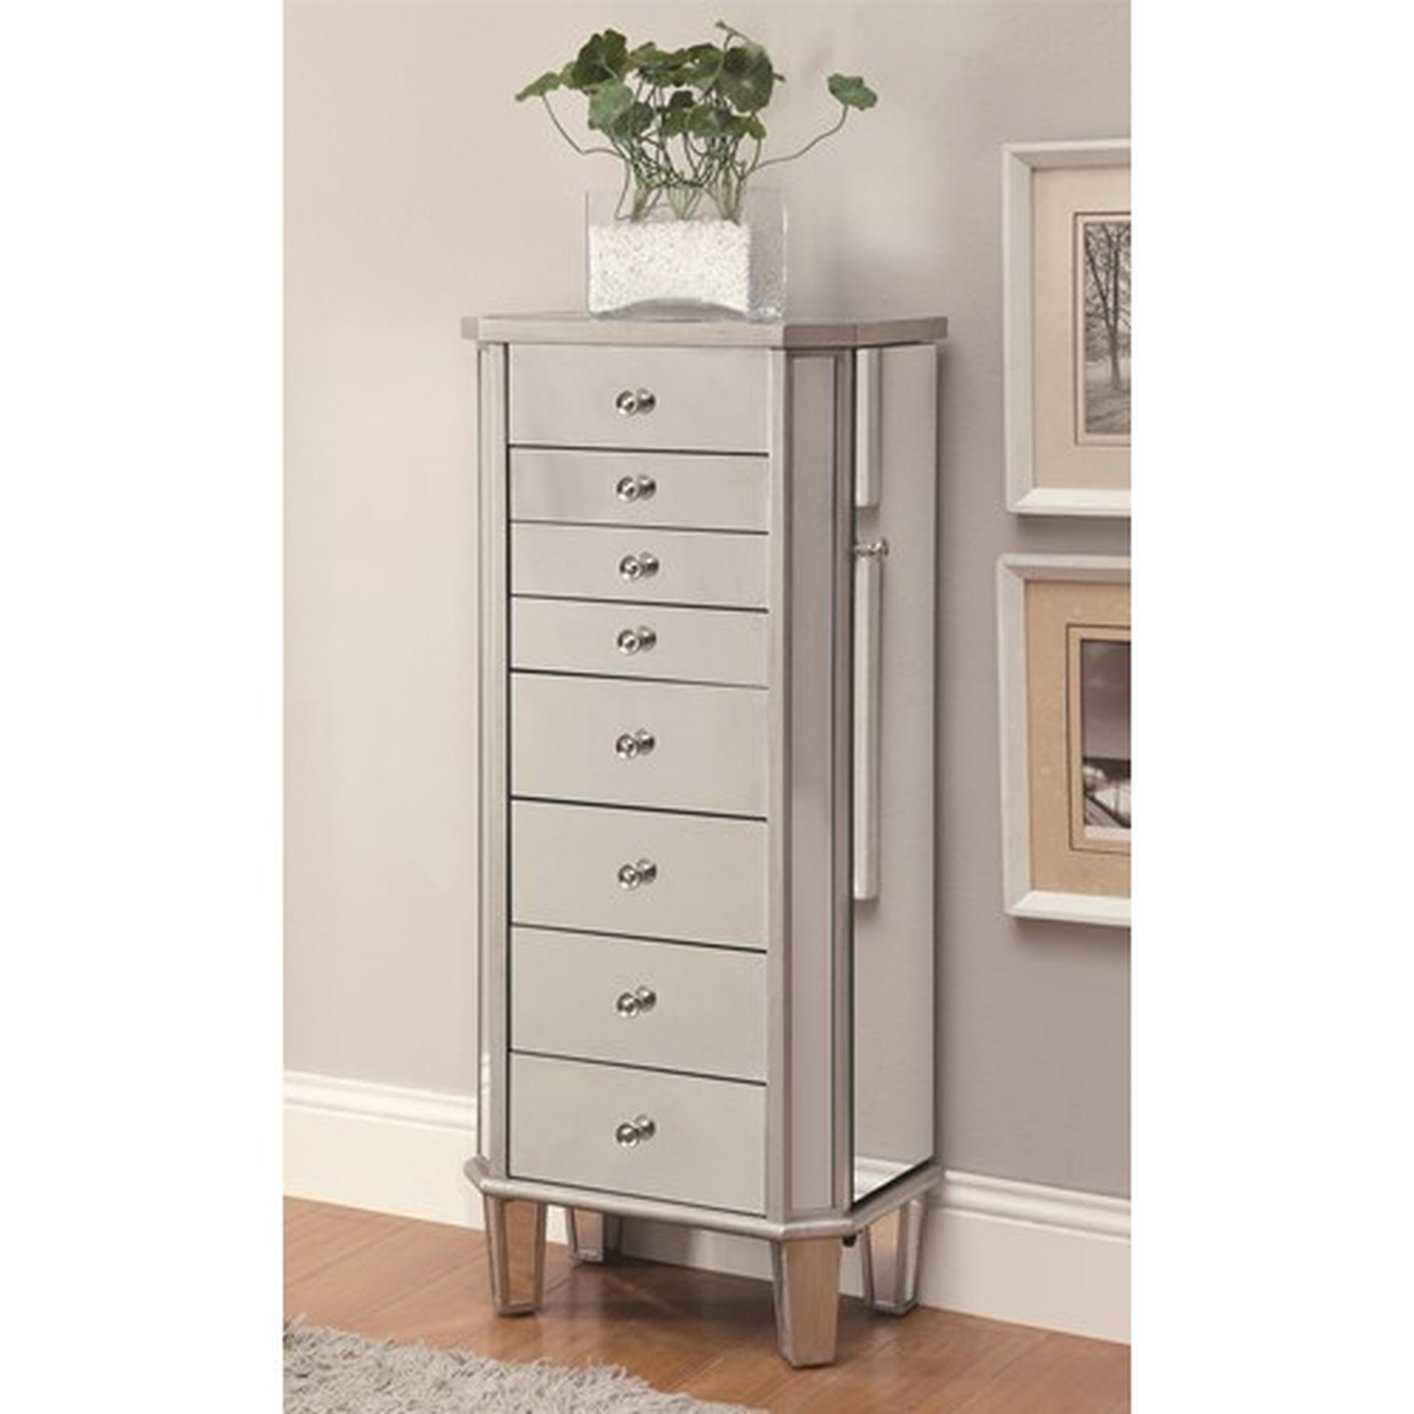 Silver Glass Jewelry Armoire StealASofa Furniture Outlet Los